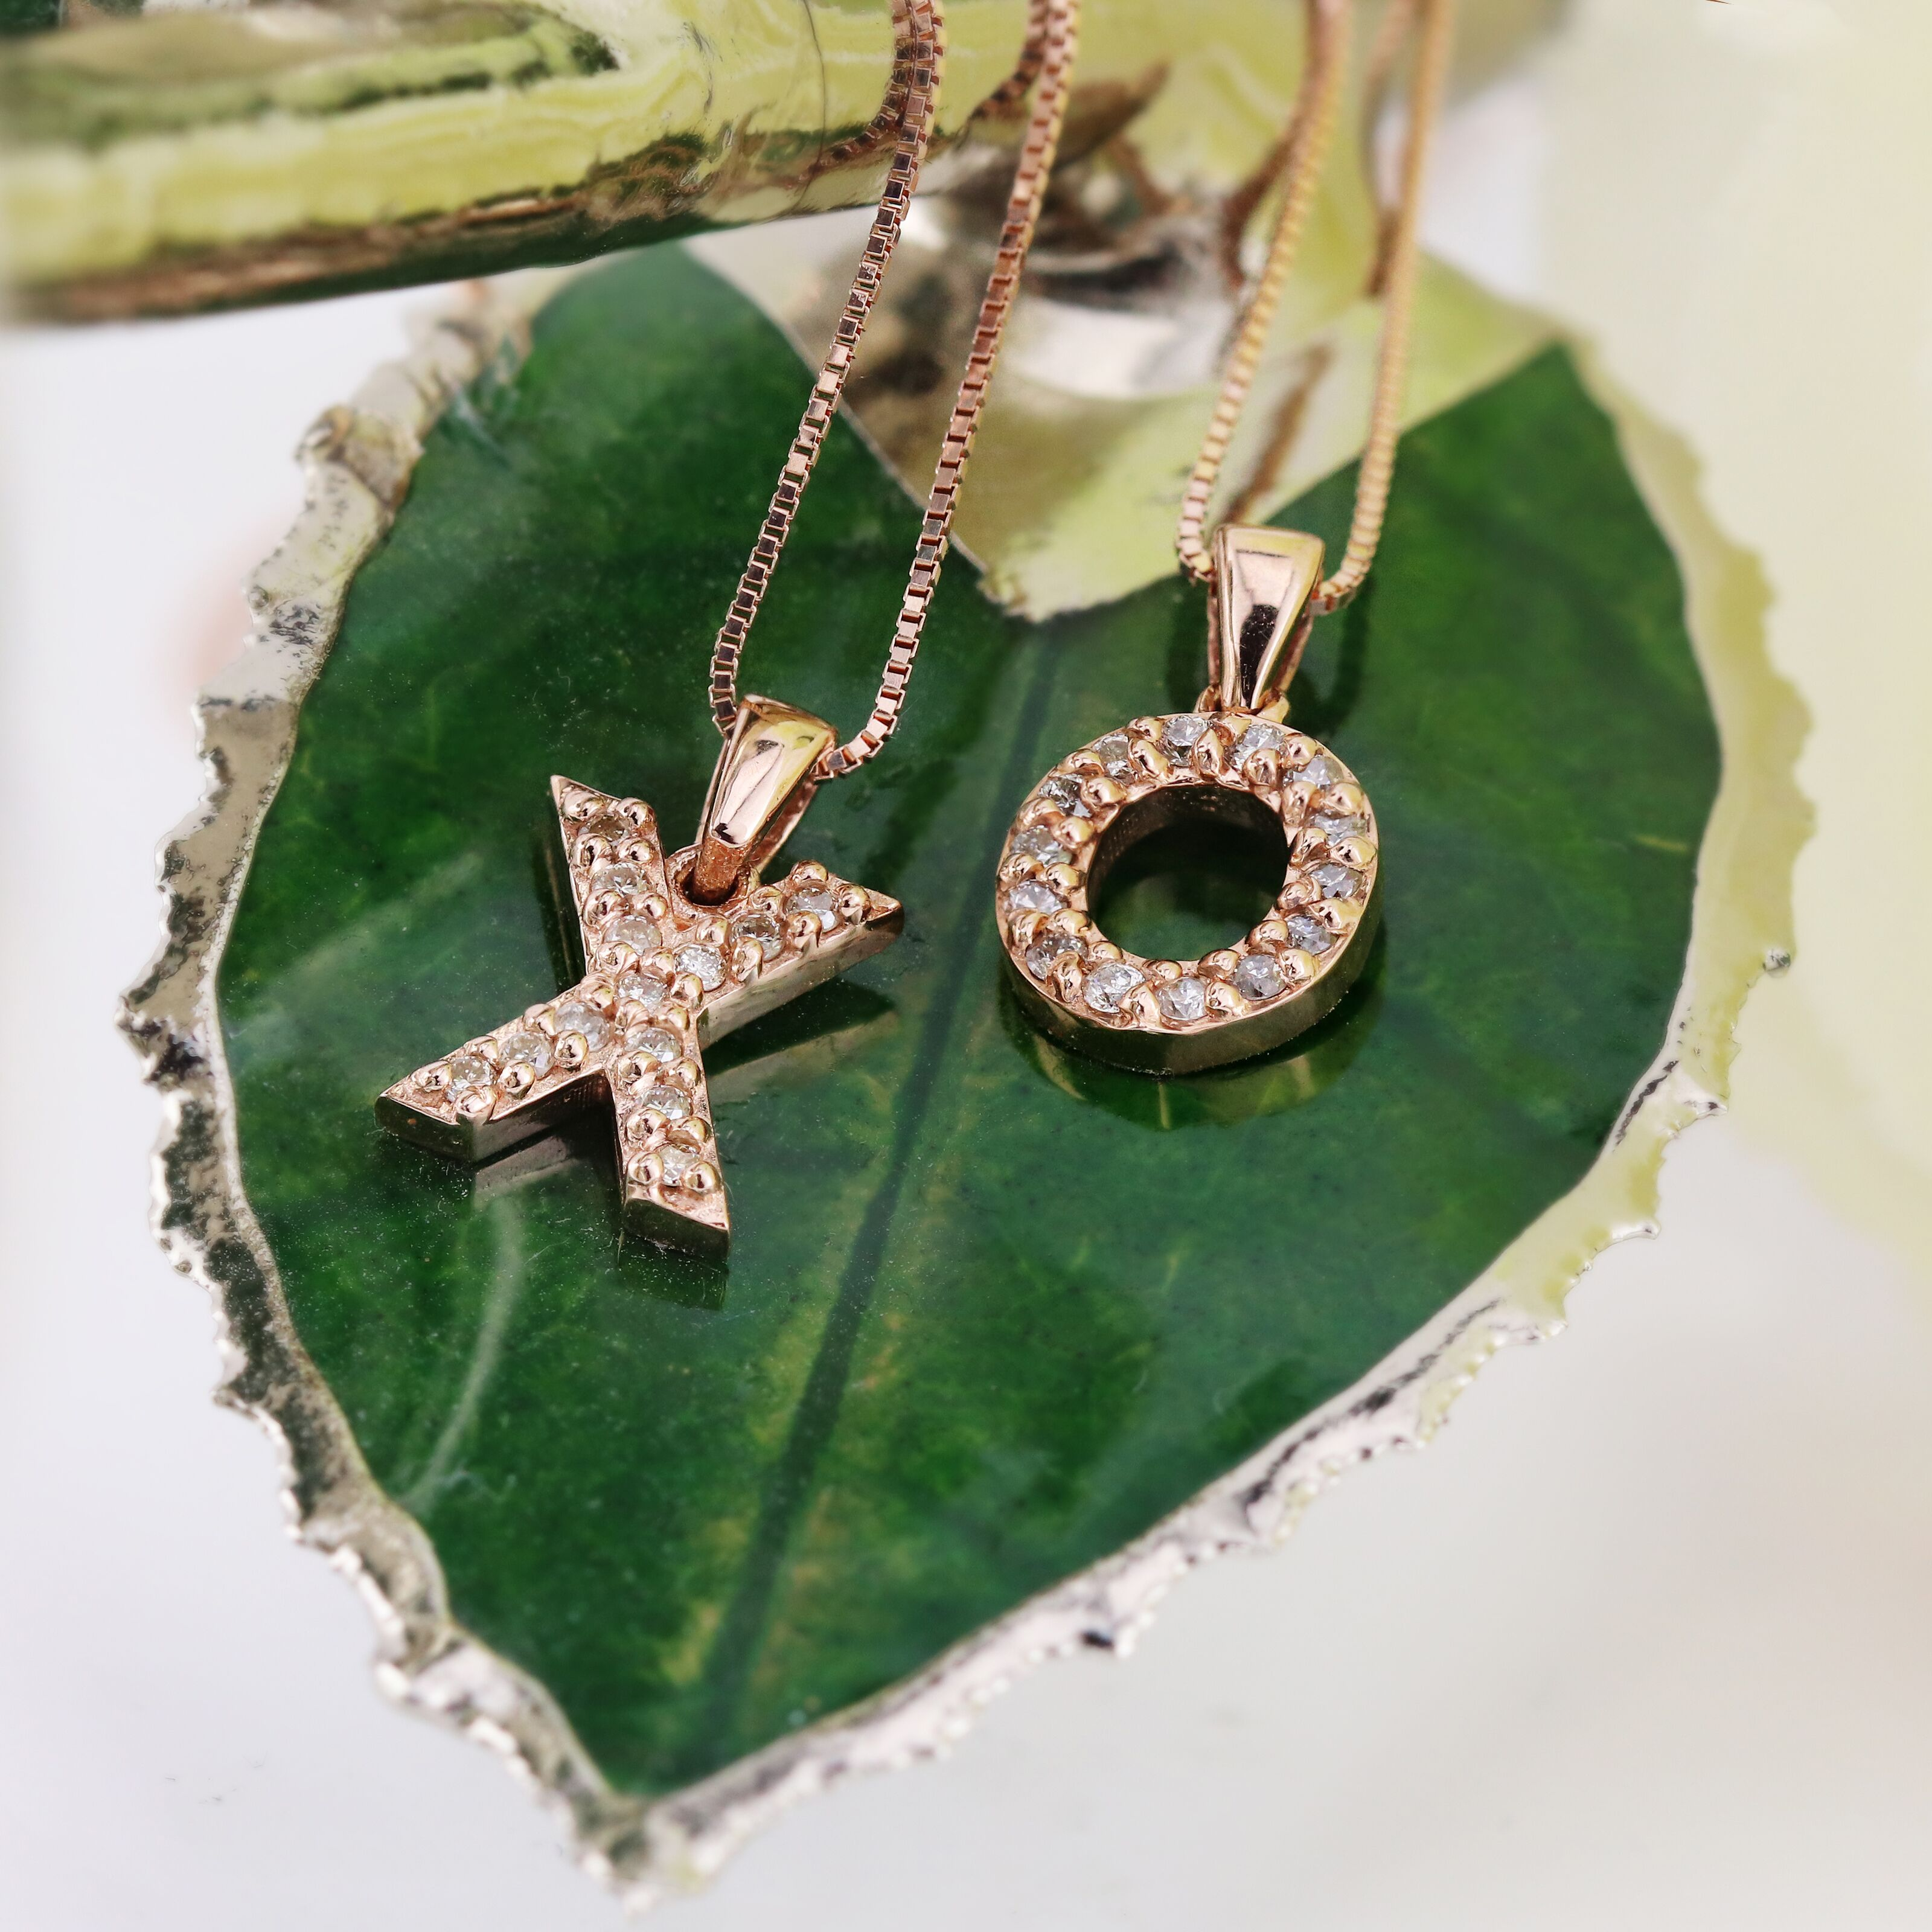 Top Jewelry Gifts: Ideas for the 10th Wedding Anniversary